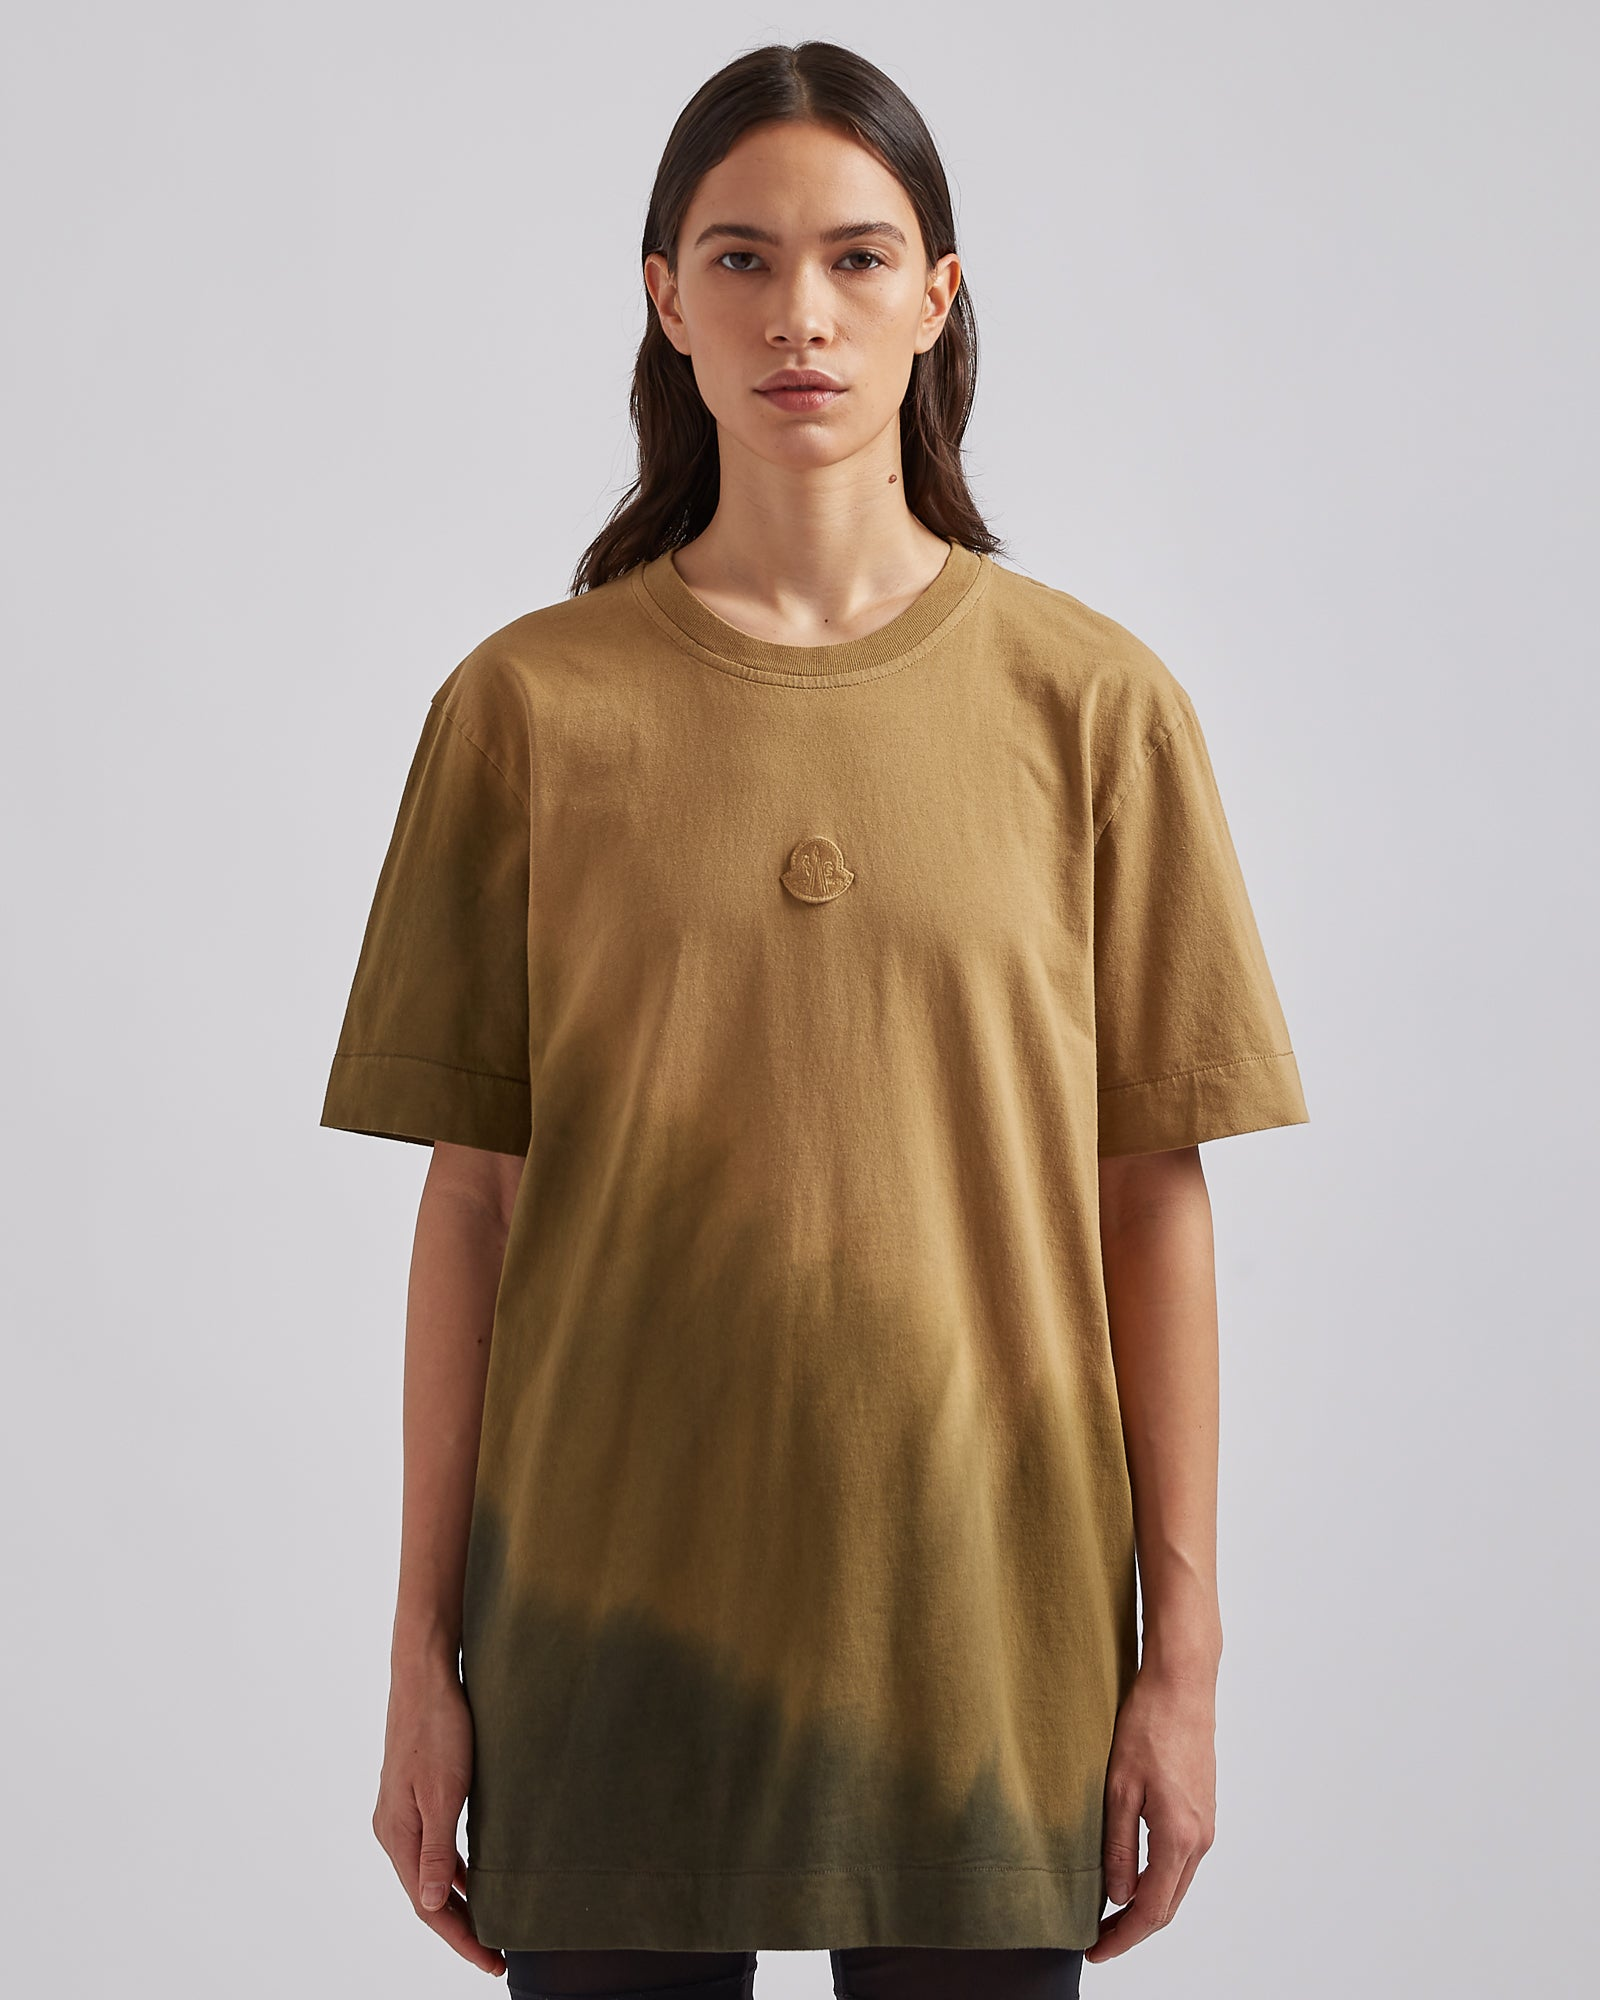 Recycled Cotton S/S T-Shirt in Khaki